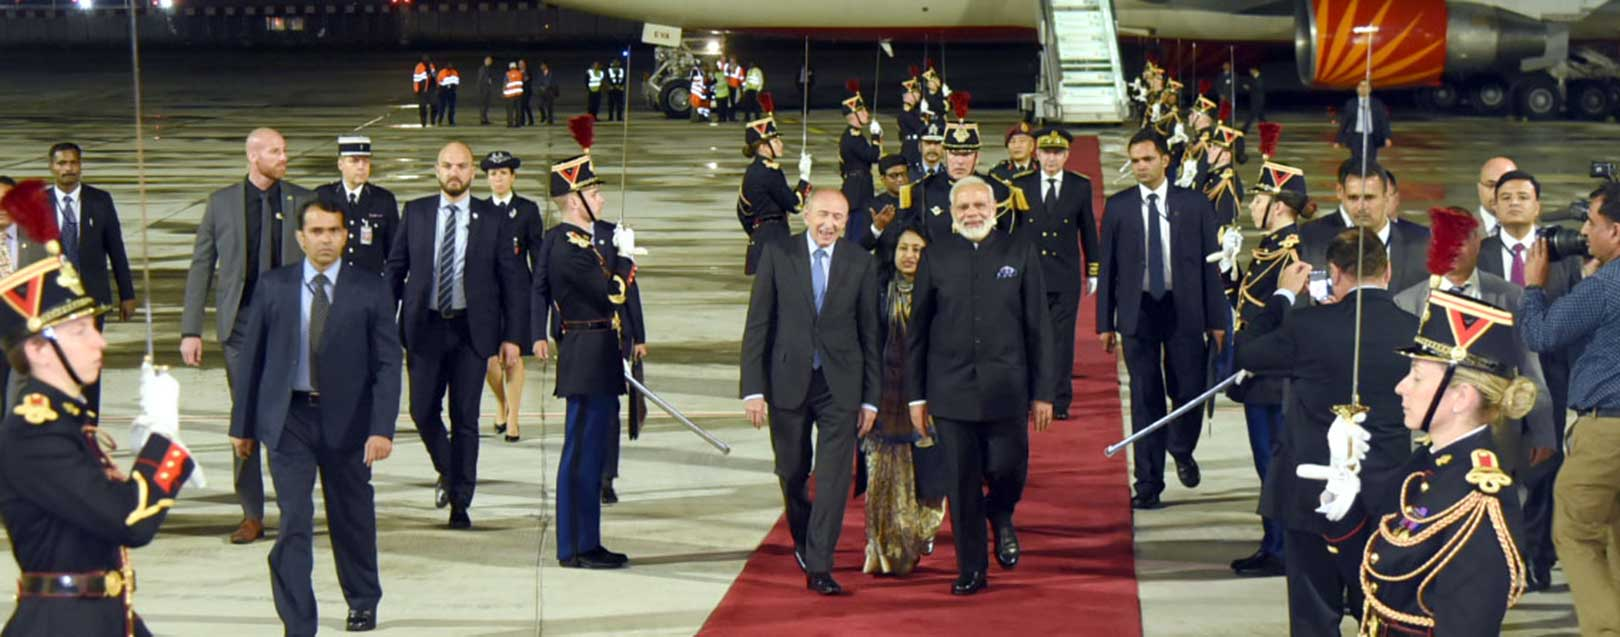 Modi reaches France, hold talks on terrorism, NSG with Macron